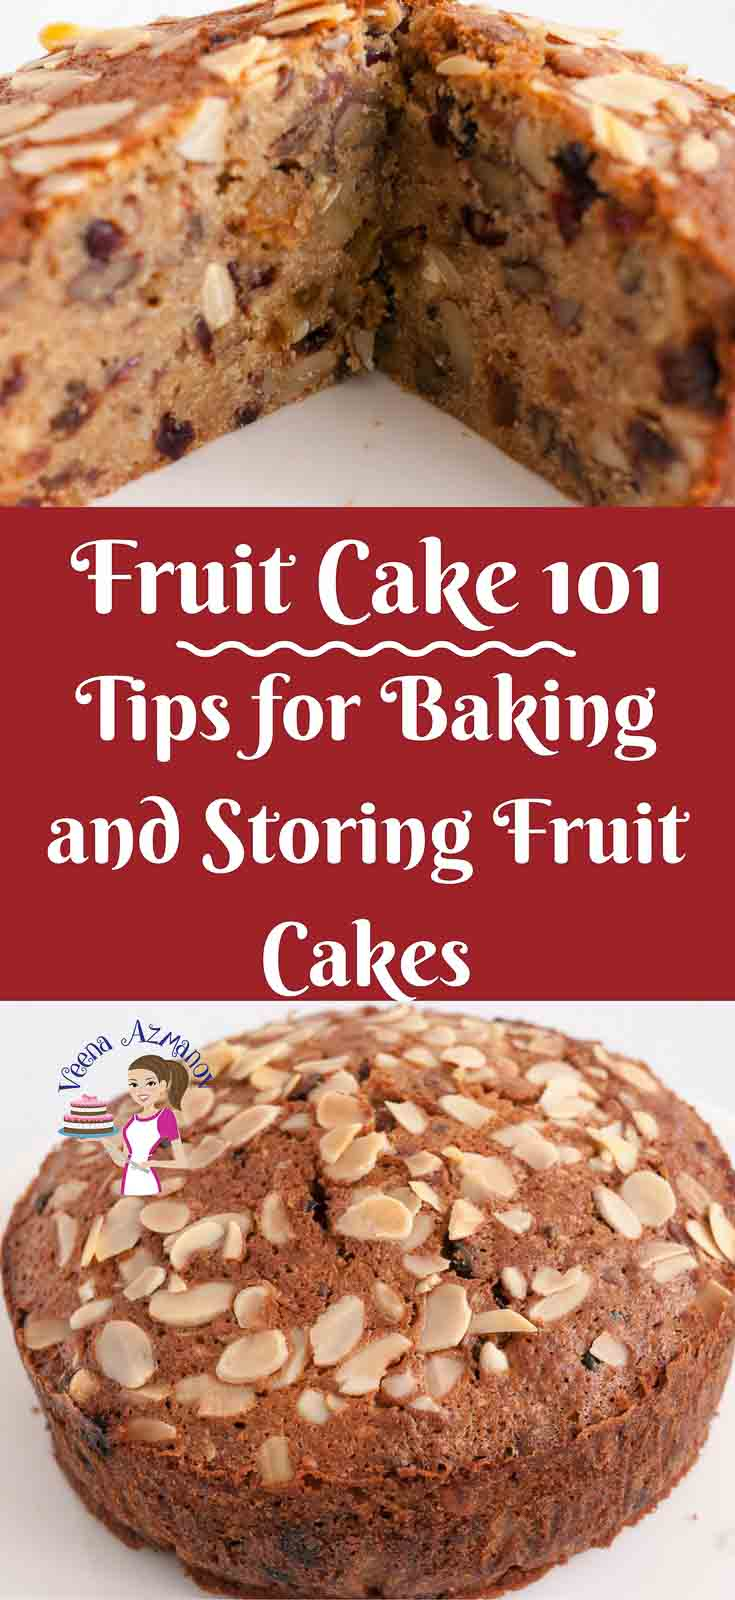 Baking a fruit cake is a little different than regular cakes.. In this Fruit cake 101 you will find tips for baking the perfect fruit cake and tips for storing your fruit cake weather you make yours with alcohol or fruit juice.